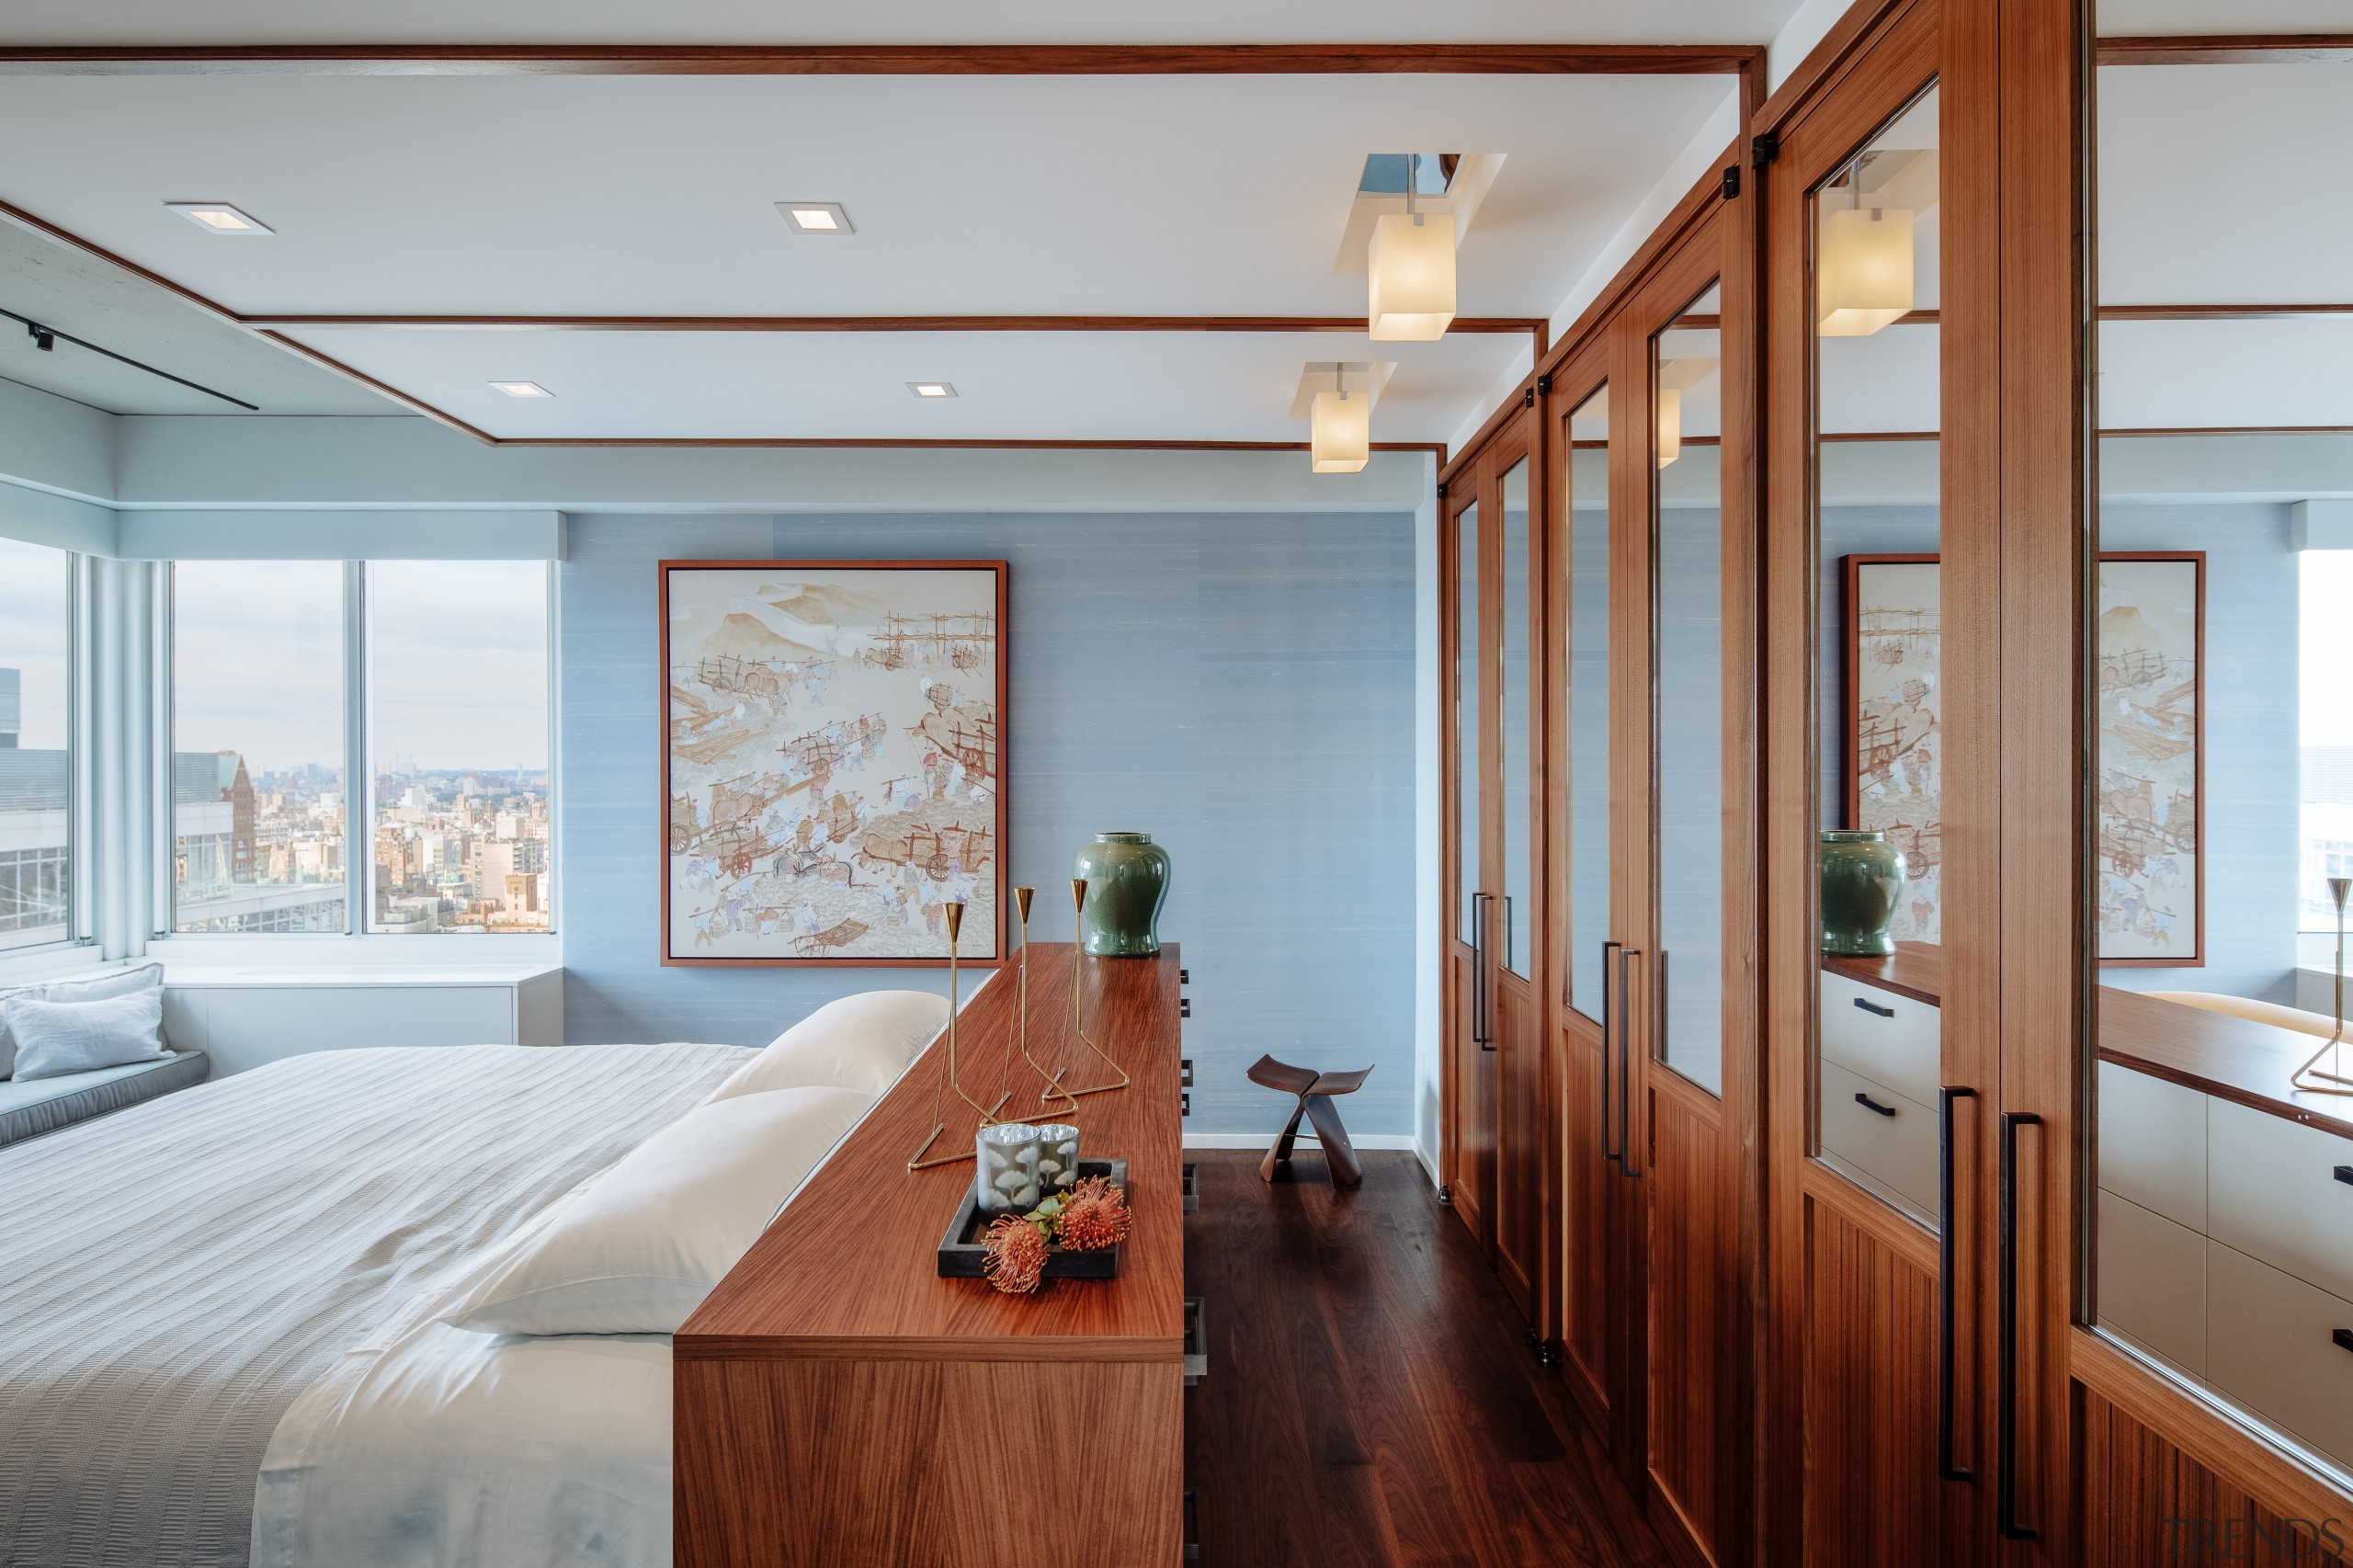 A major fault of this apartment's existing layout architecture, bedroom, design, glass doors, floor, flooring, furniture, hardwood, home, penthouse, interior design, Andrew Wilkinson